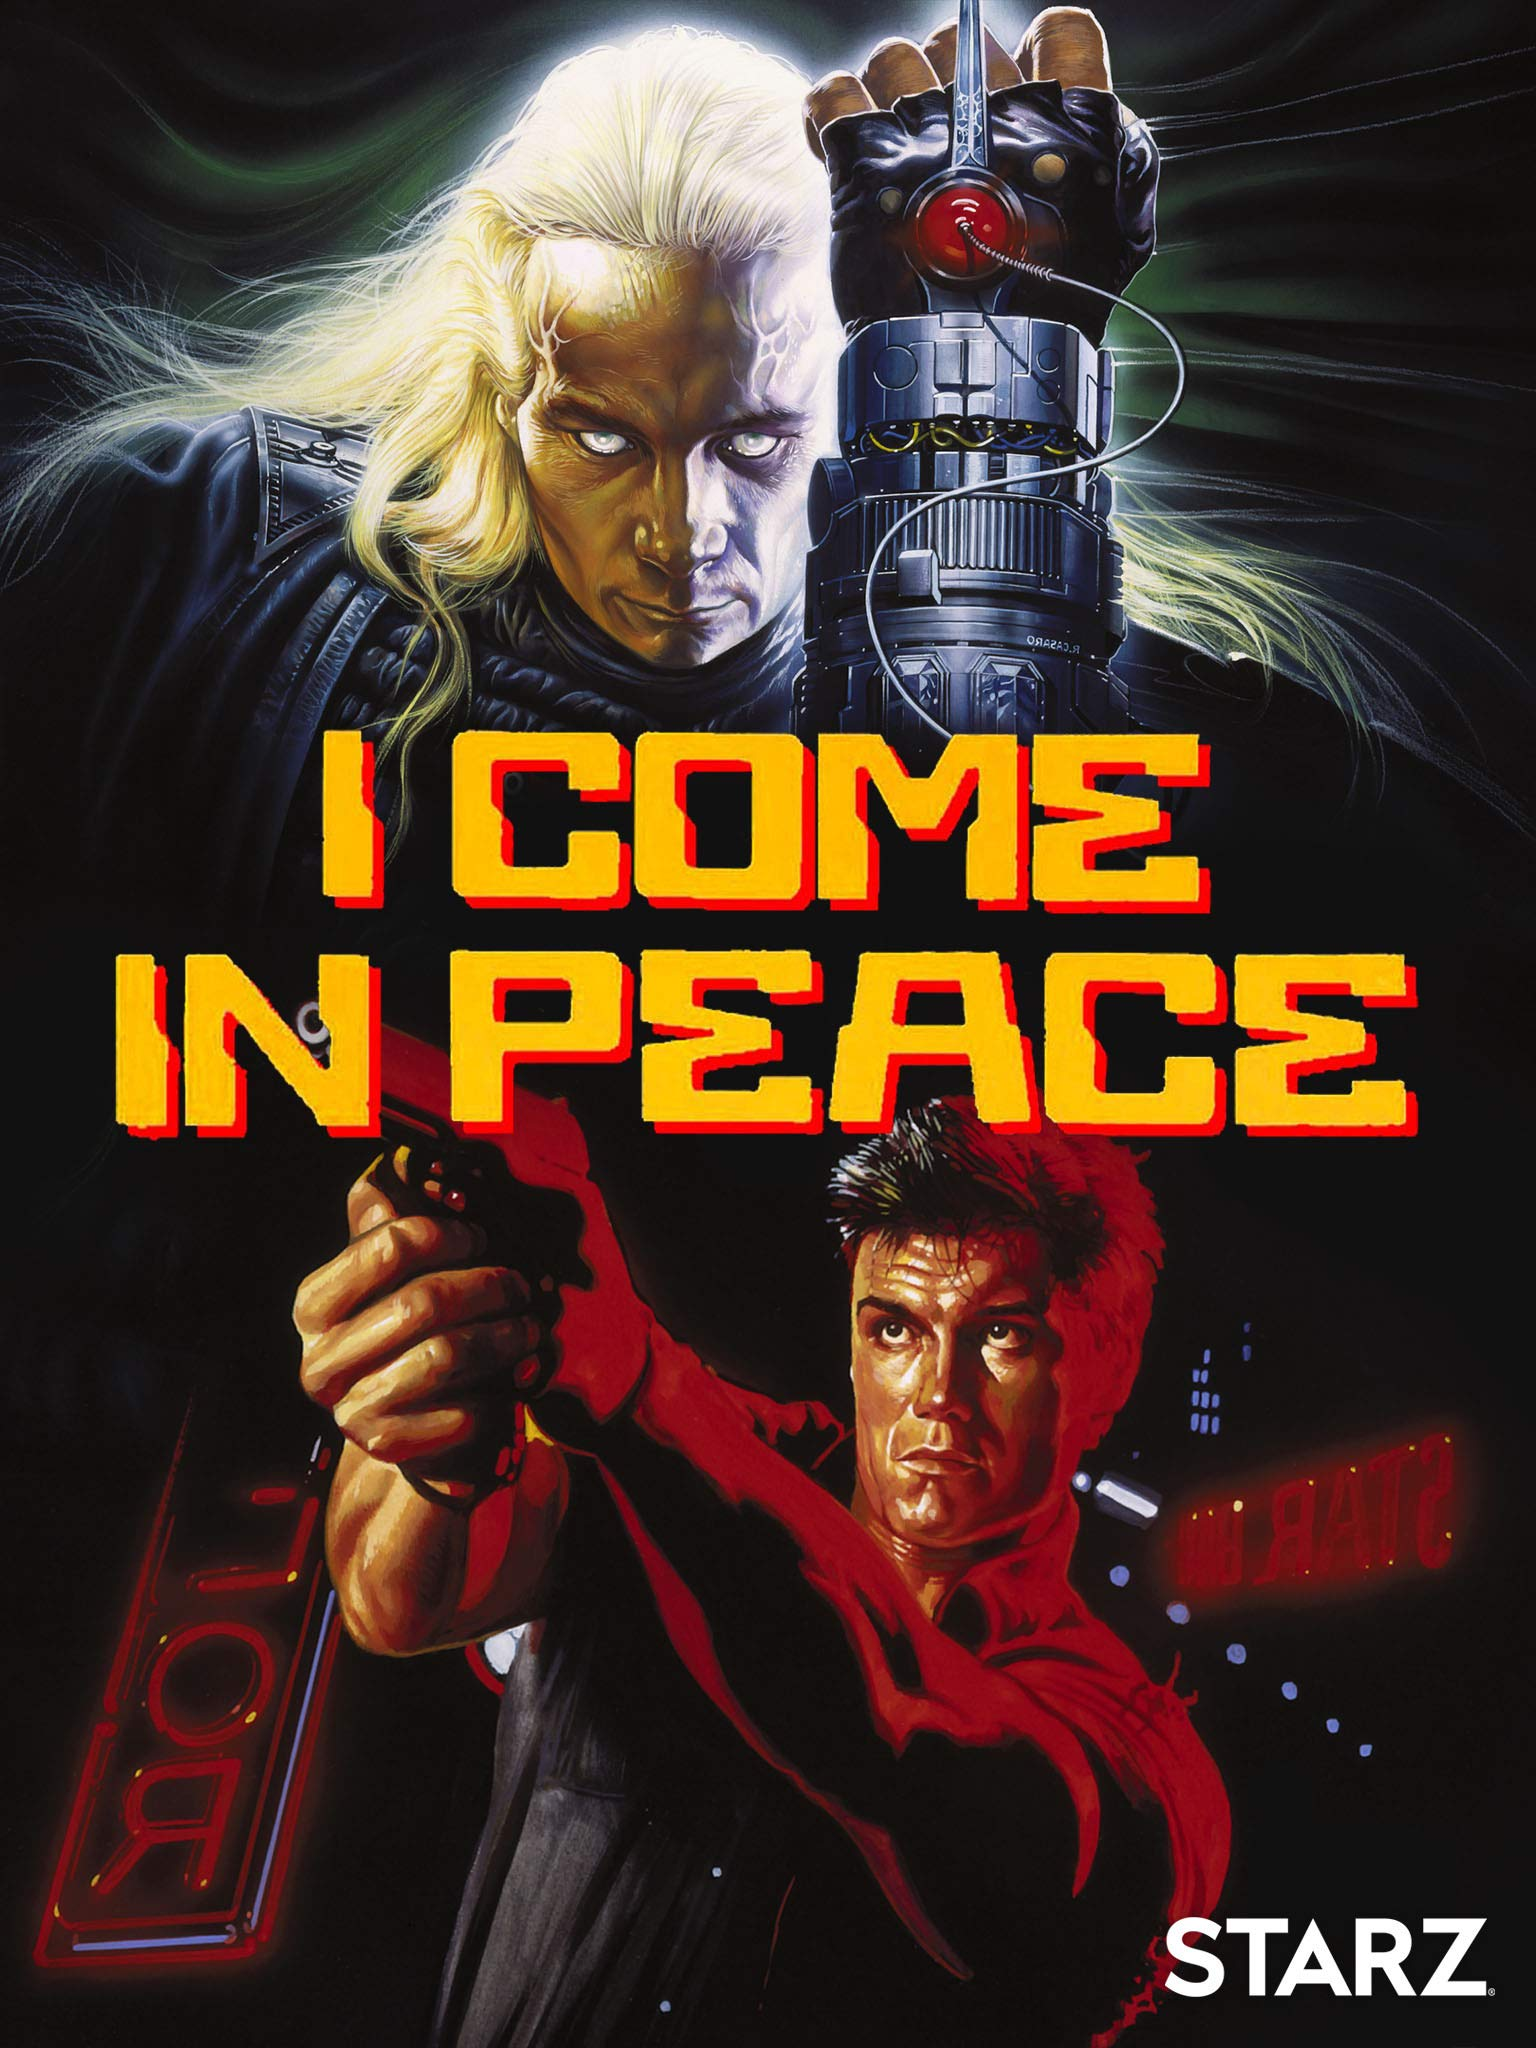 16 90s Sci-FI Movies That Were Mostly Forgettable But Are Still Loved By Many Watch I Come In Peace | Prime Video